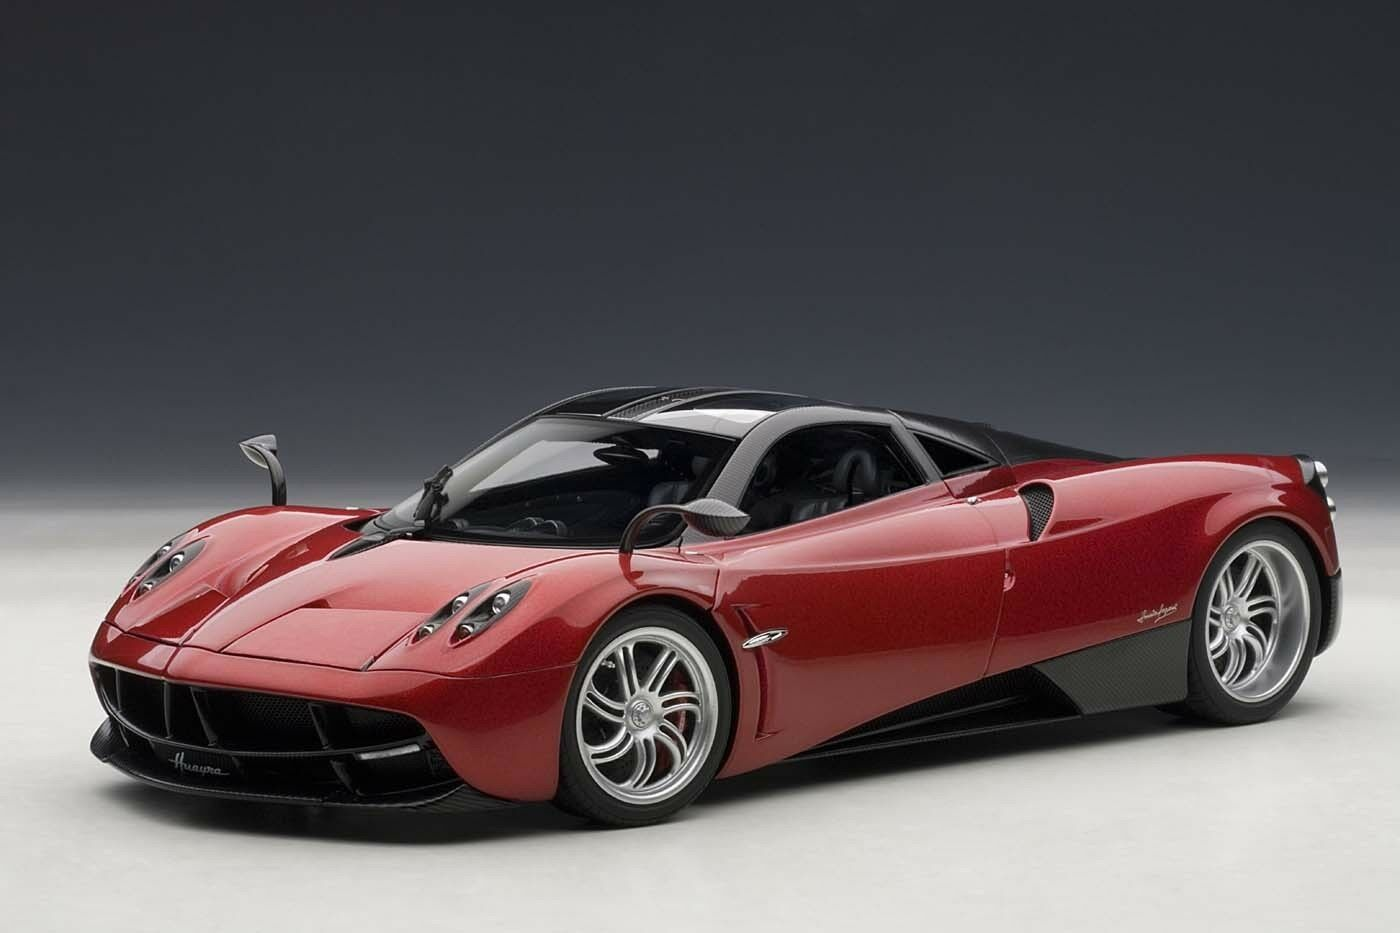 Pagani Huayra rouge 1 18 by Autoart 78268 Brand New Release in box Neuf Dernier